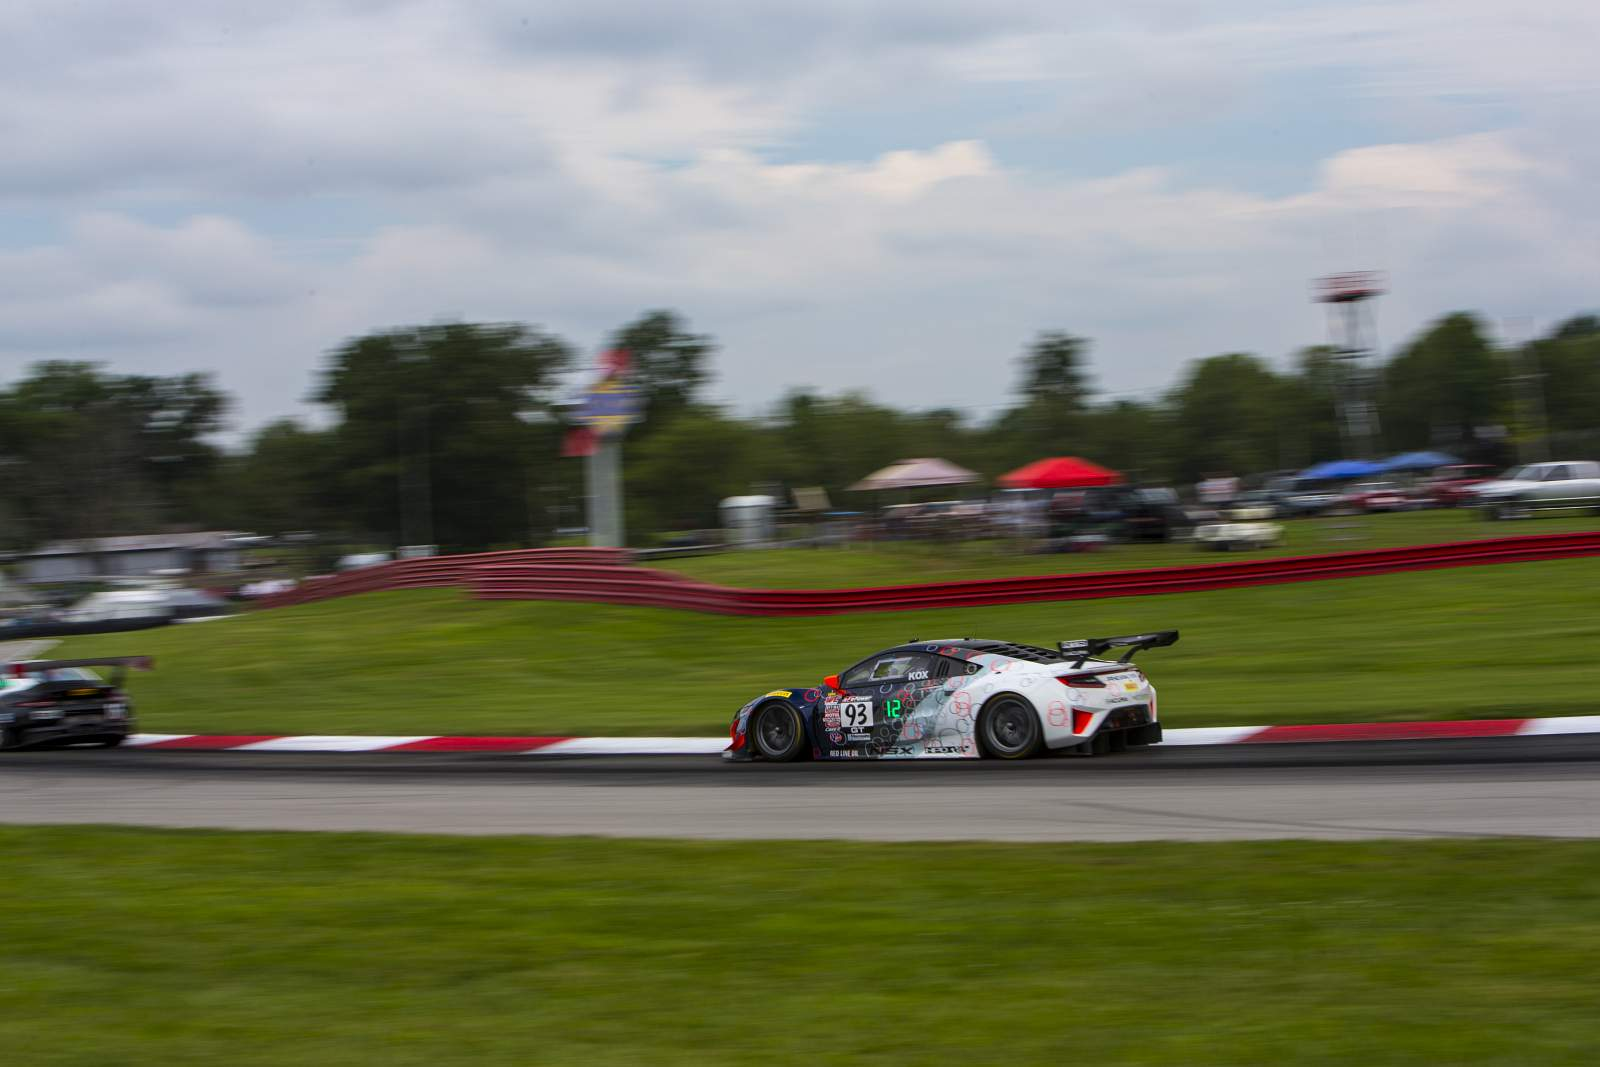 peter-kox-realtime-racing-pirelli-world-challenge-mid-ohio-28